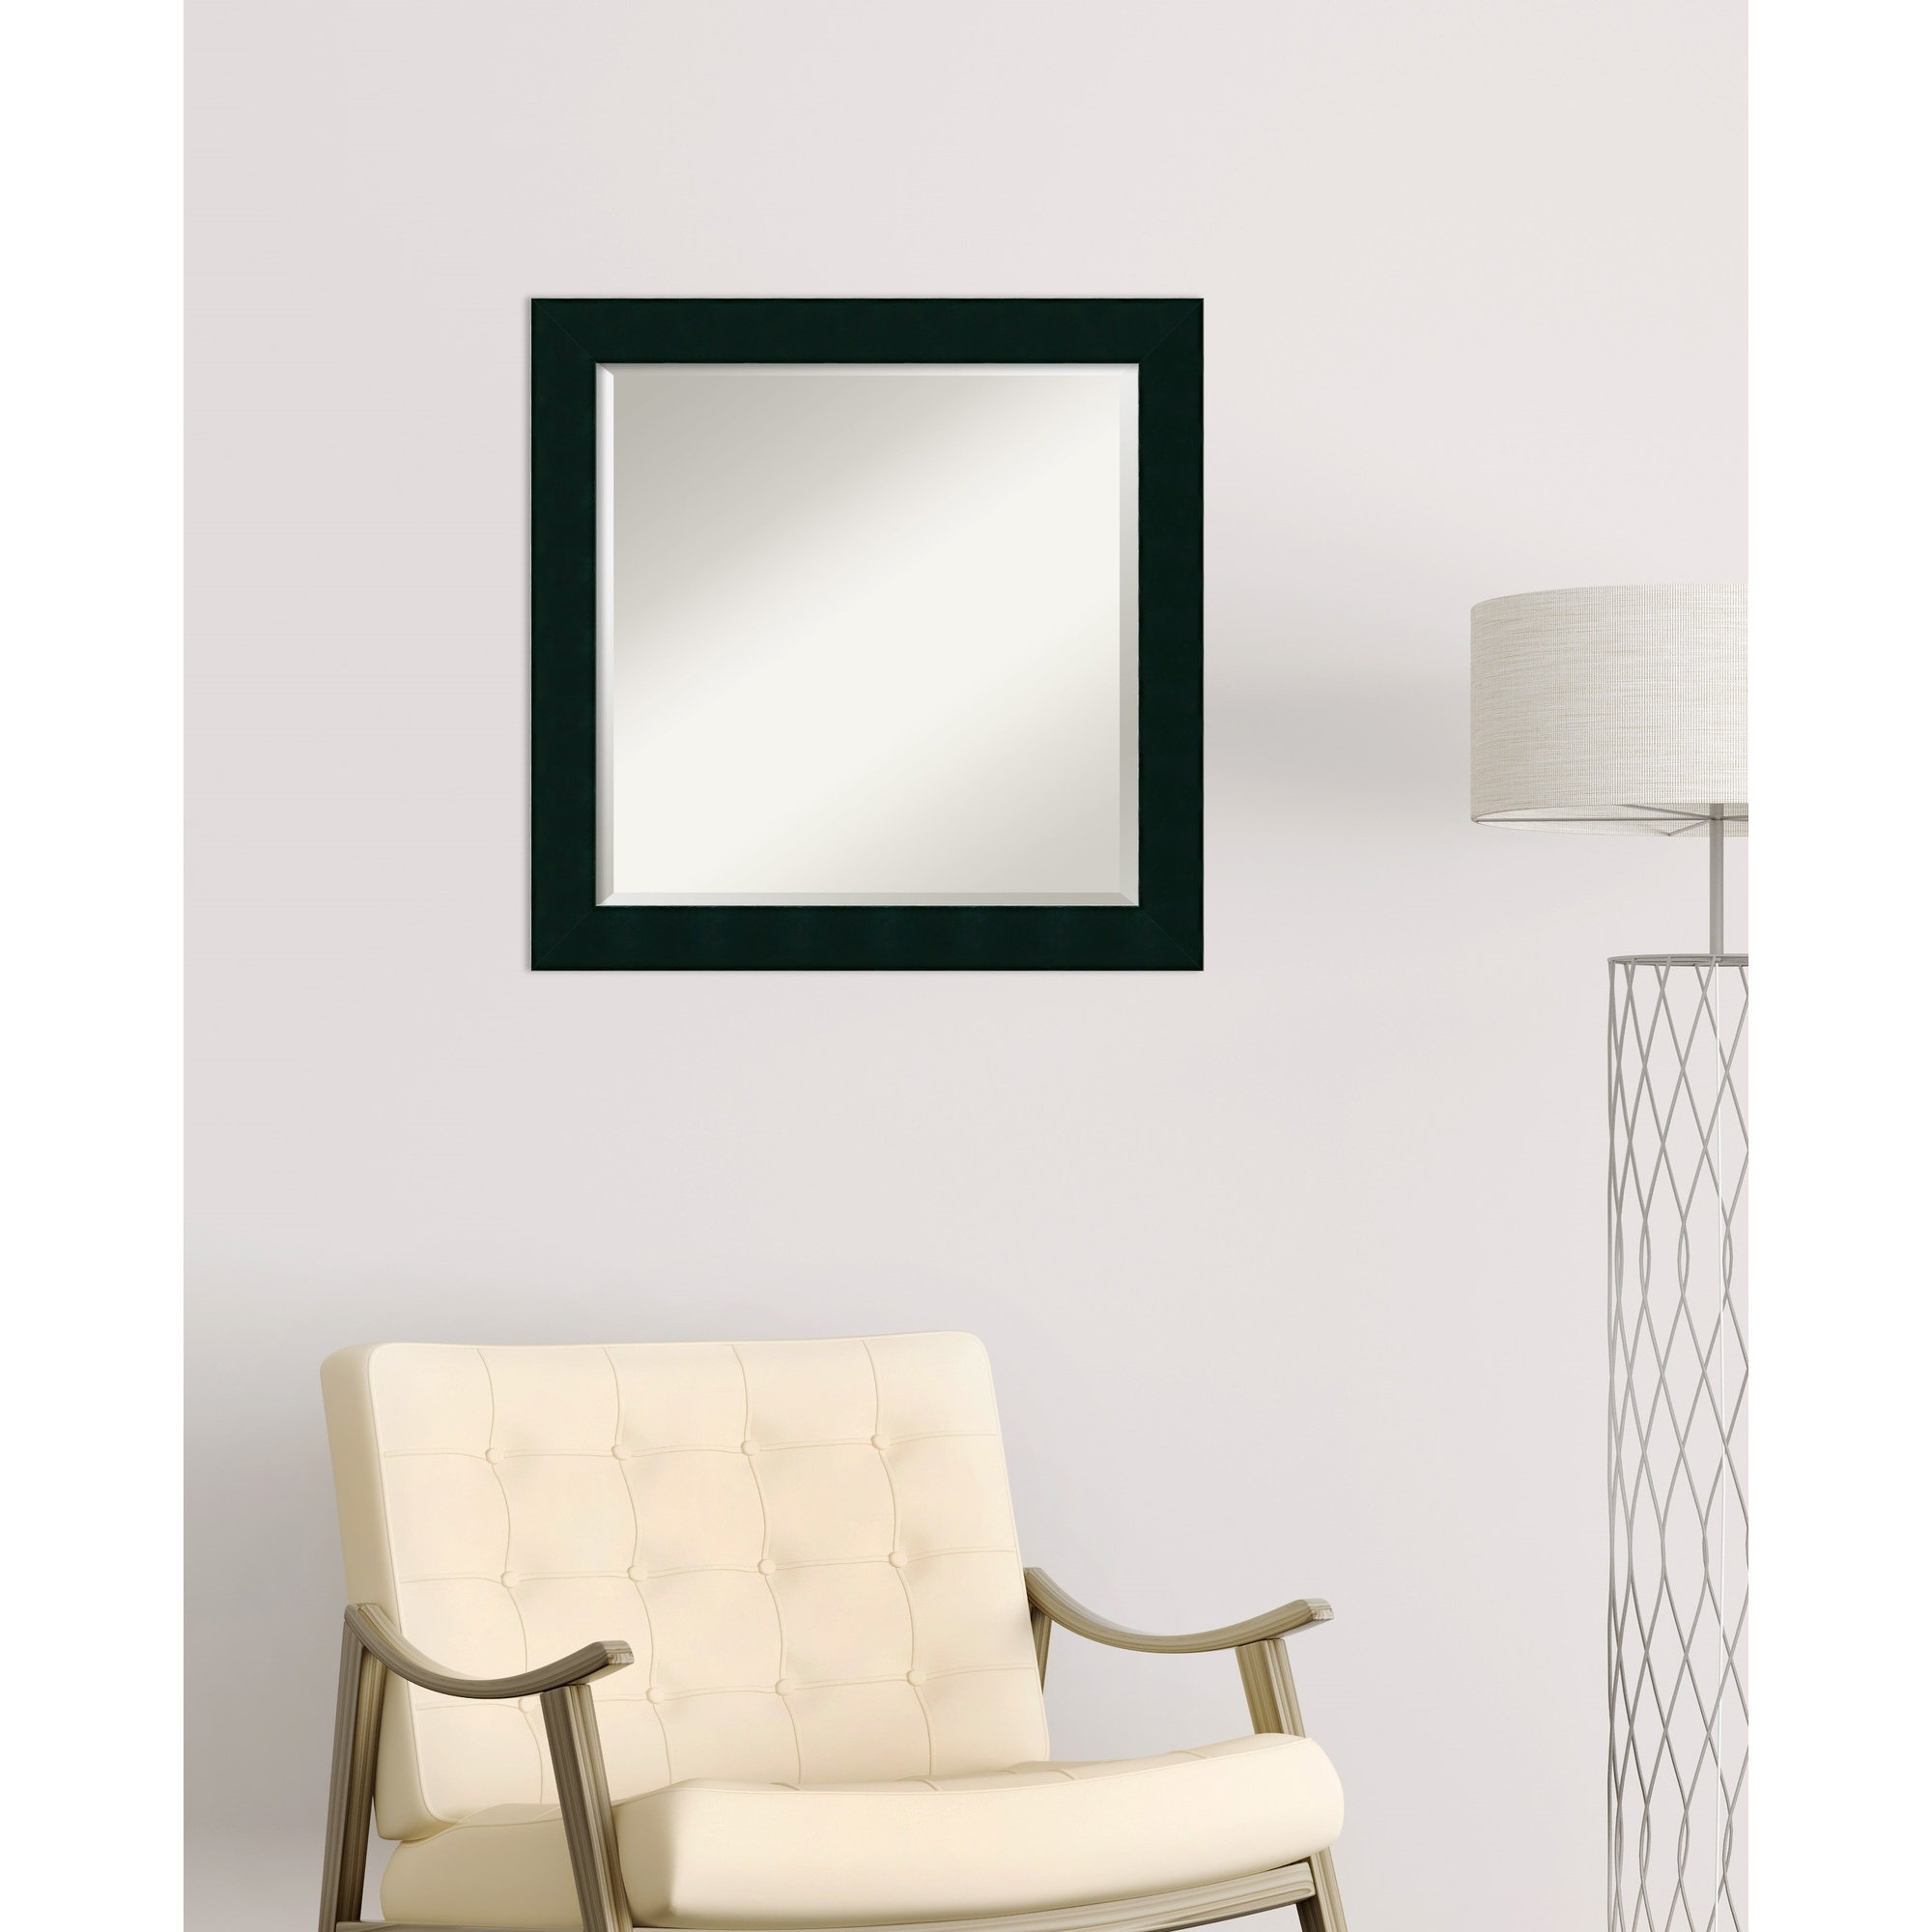 Square Grid Mirror | Wayfair With 2 Piece Priscilla Square Traditional Beveled Distressed Accent Mirror Sets (View 8 of 20)